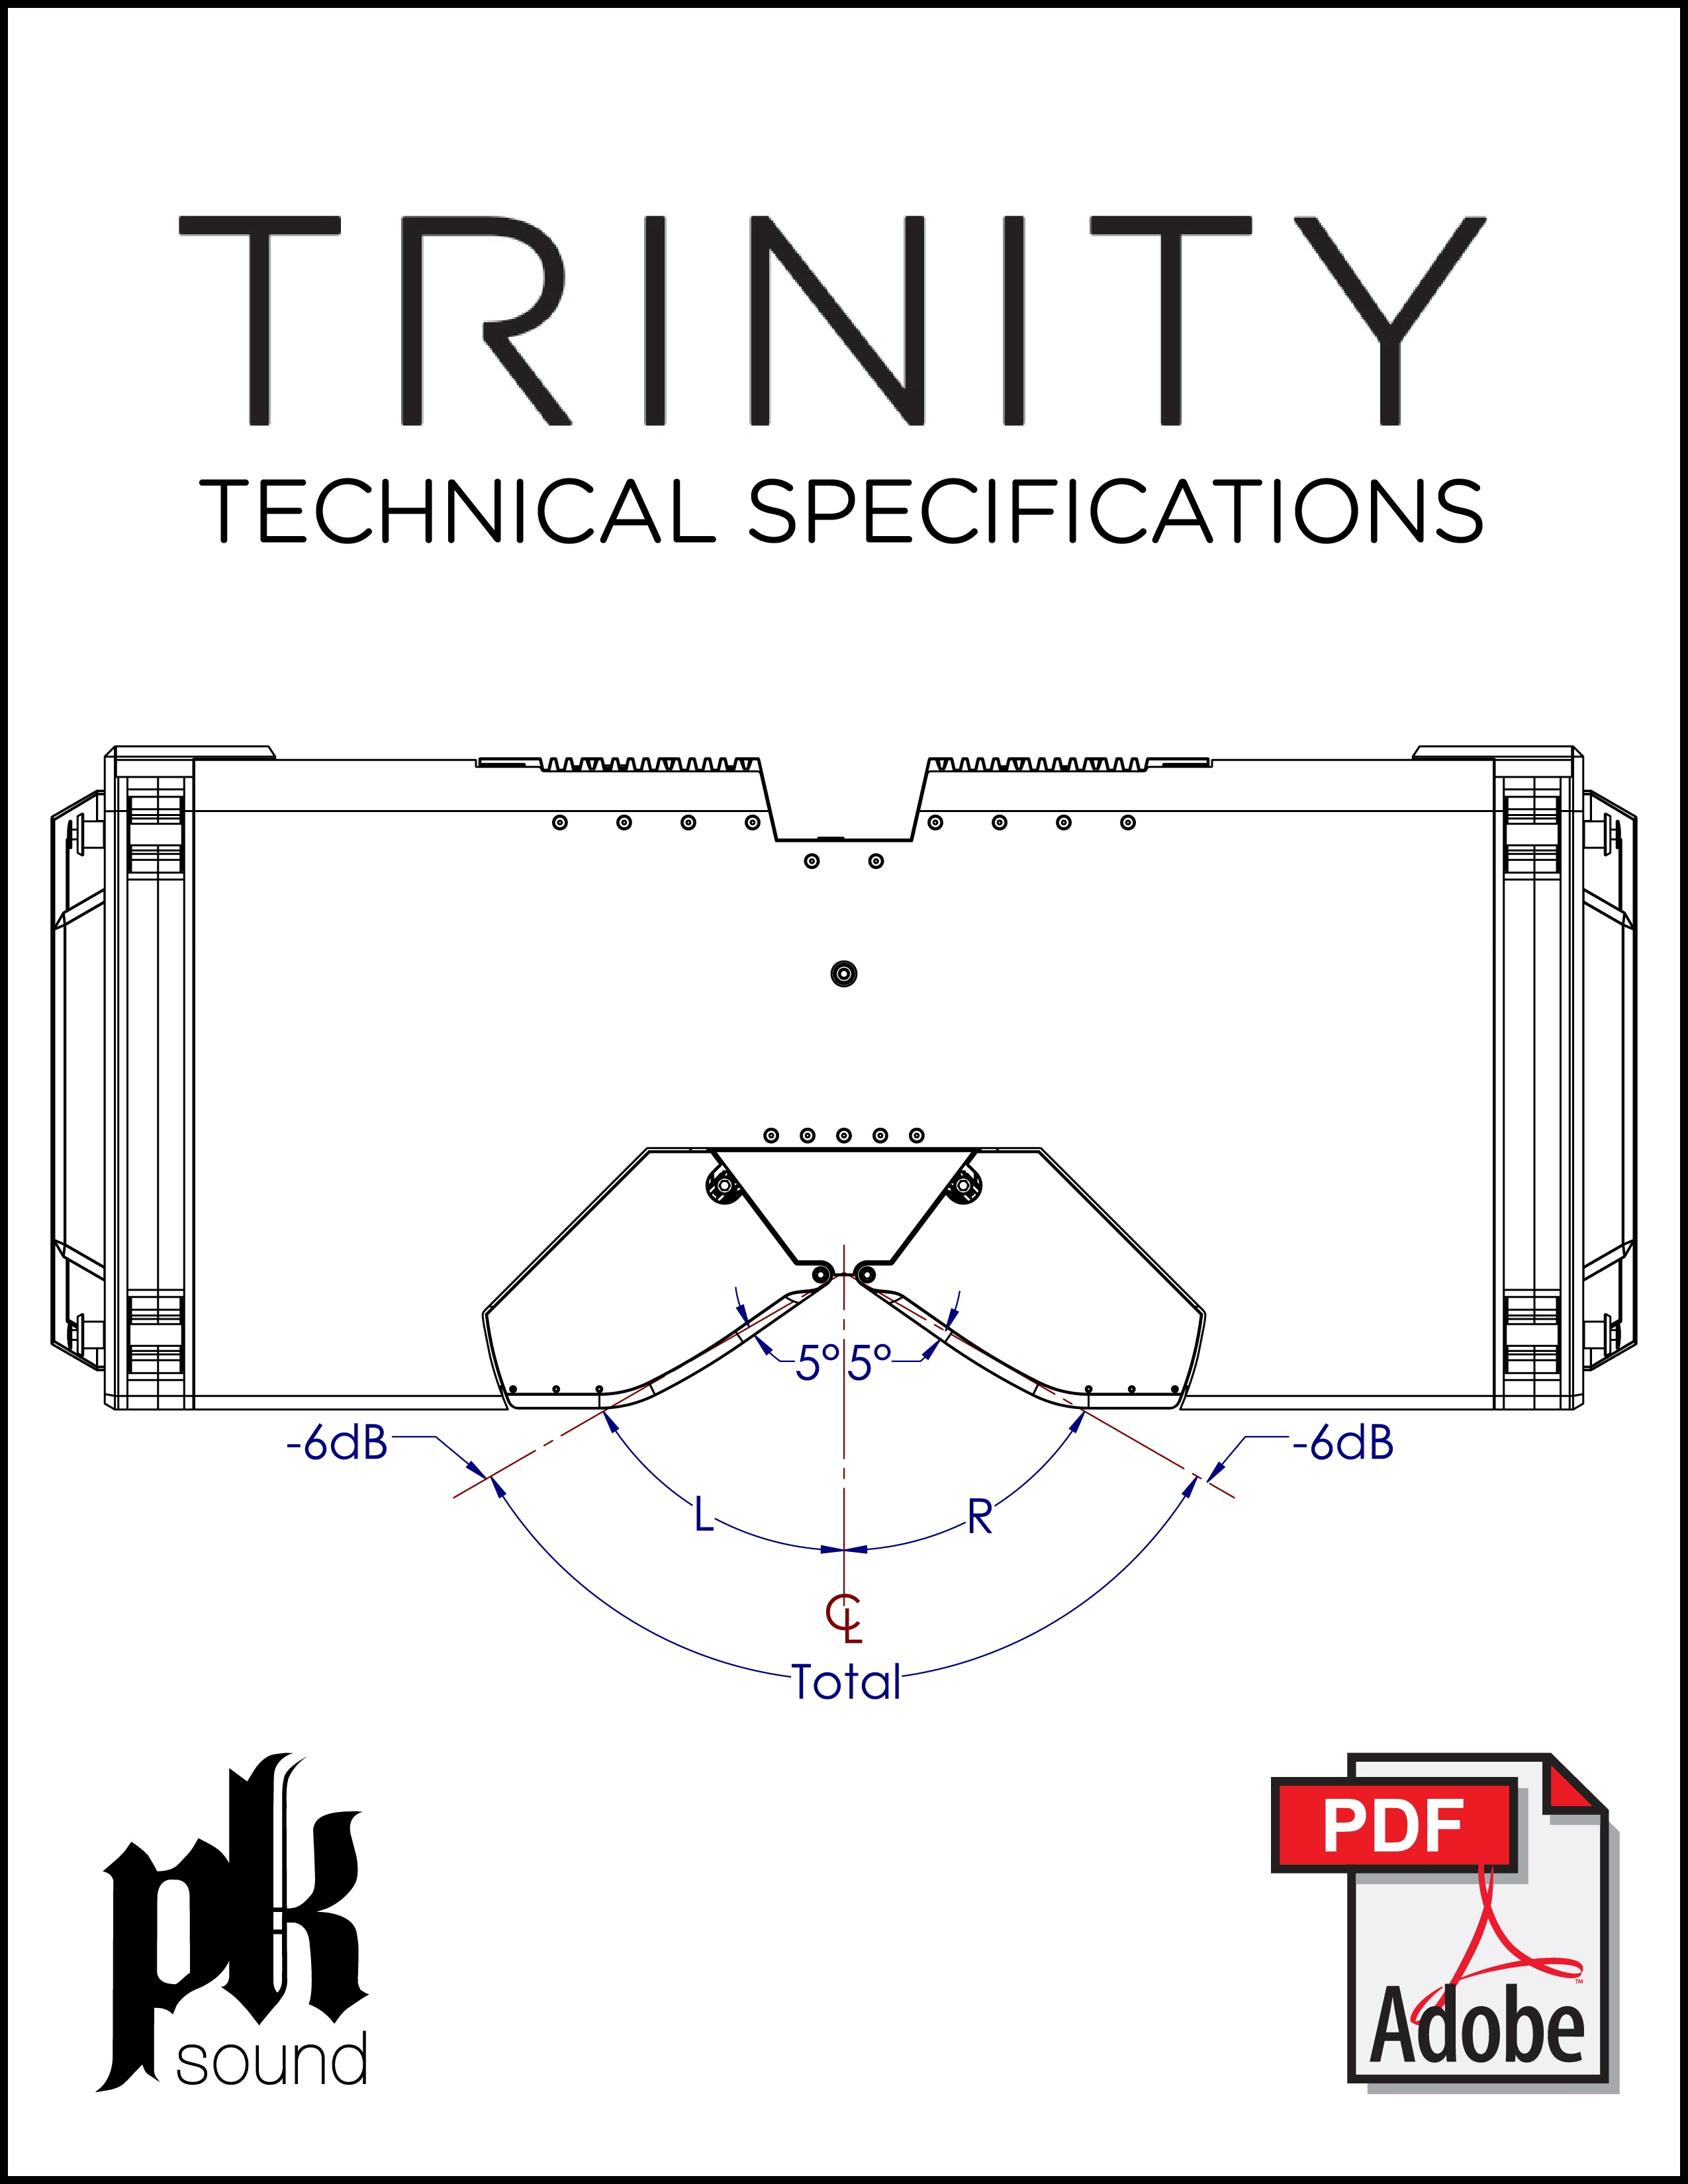 Download Trinity Technical Specs